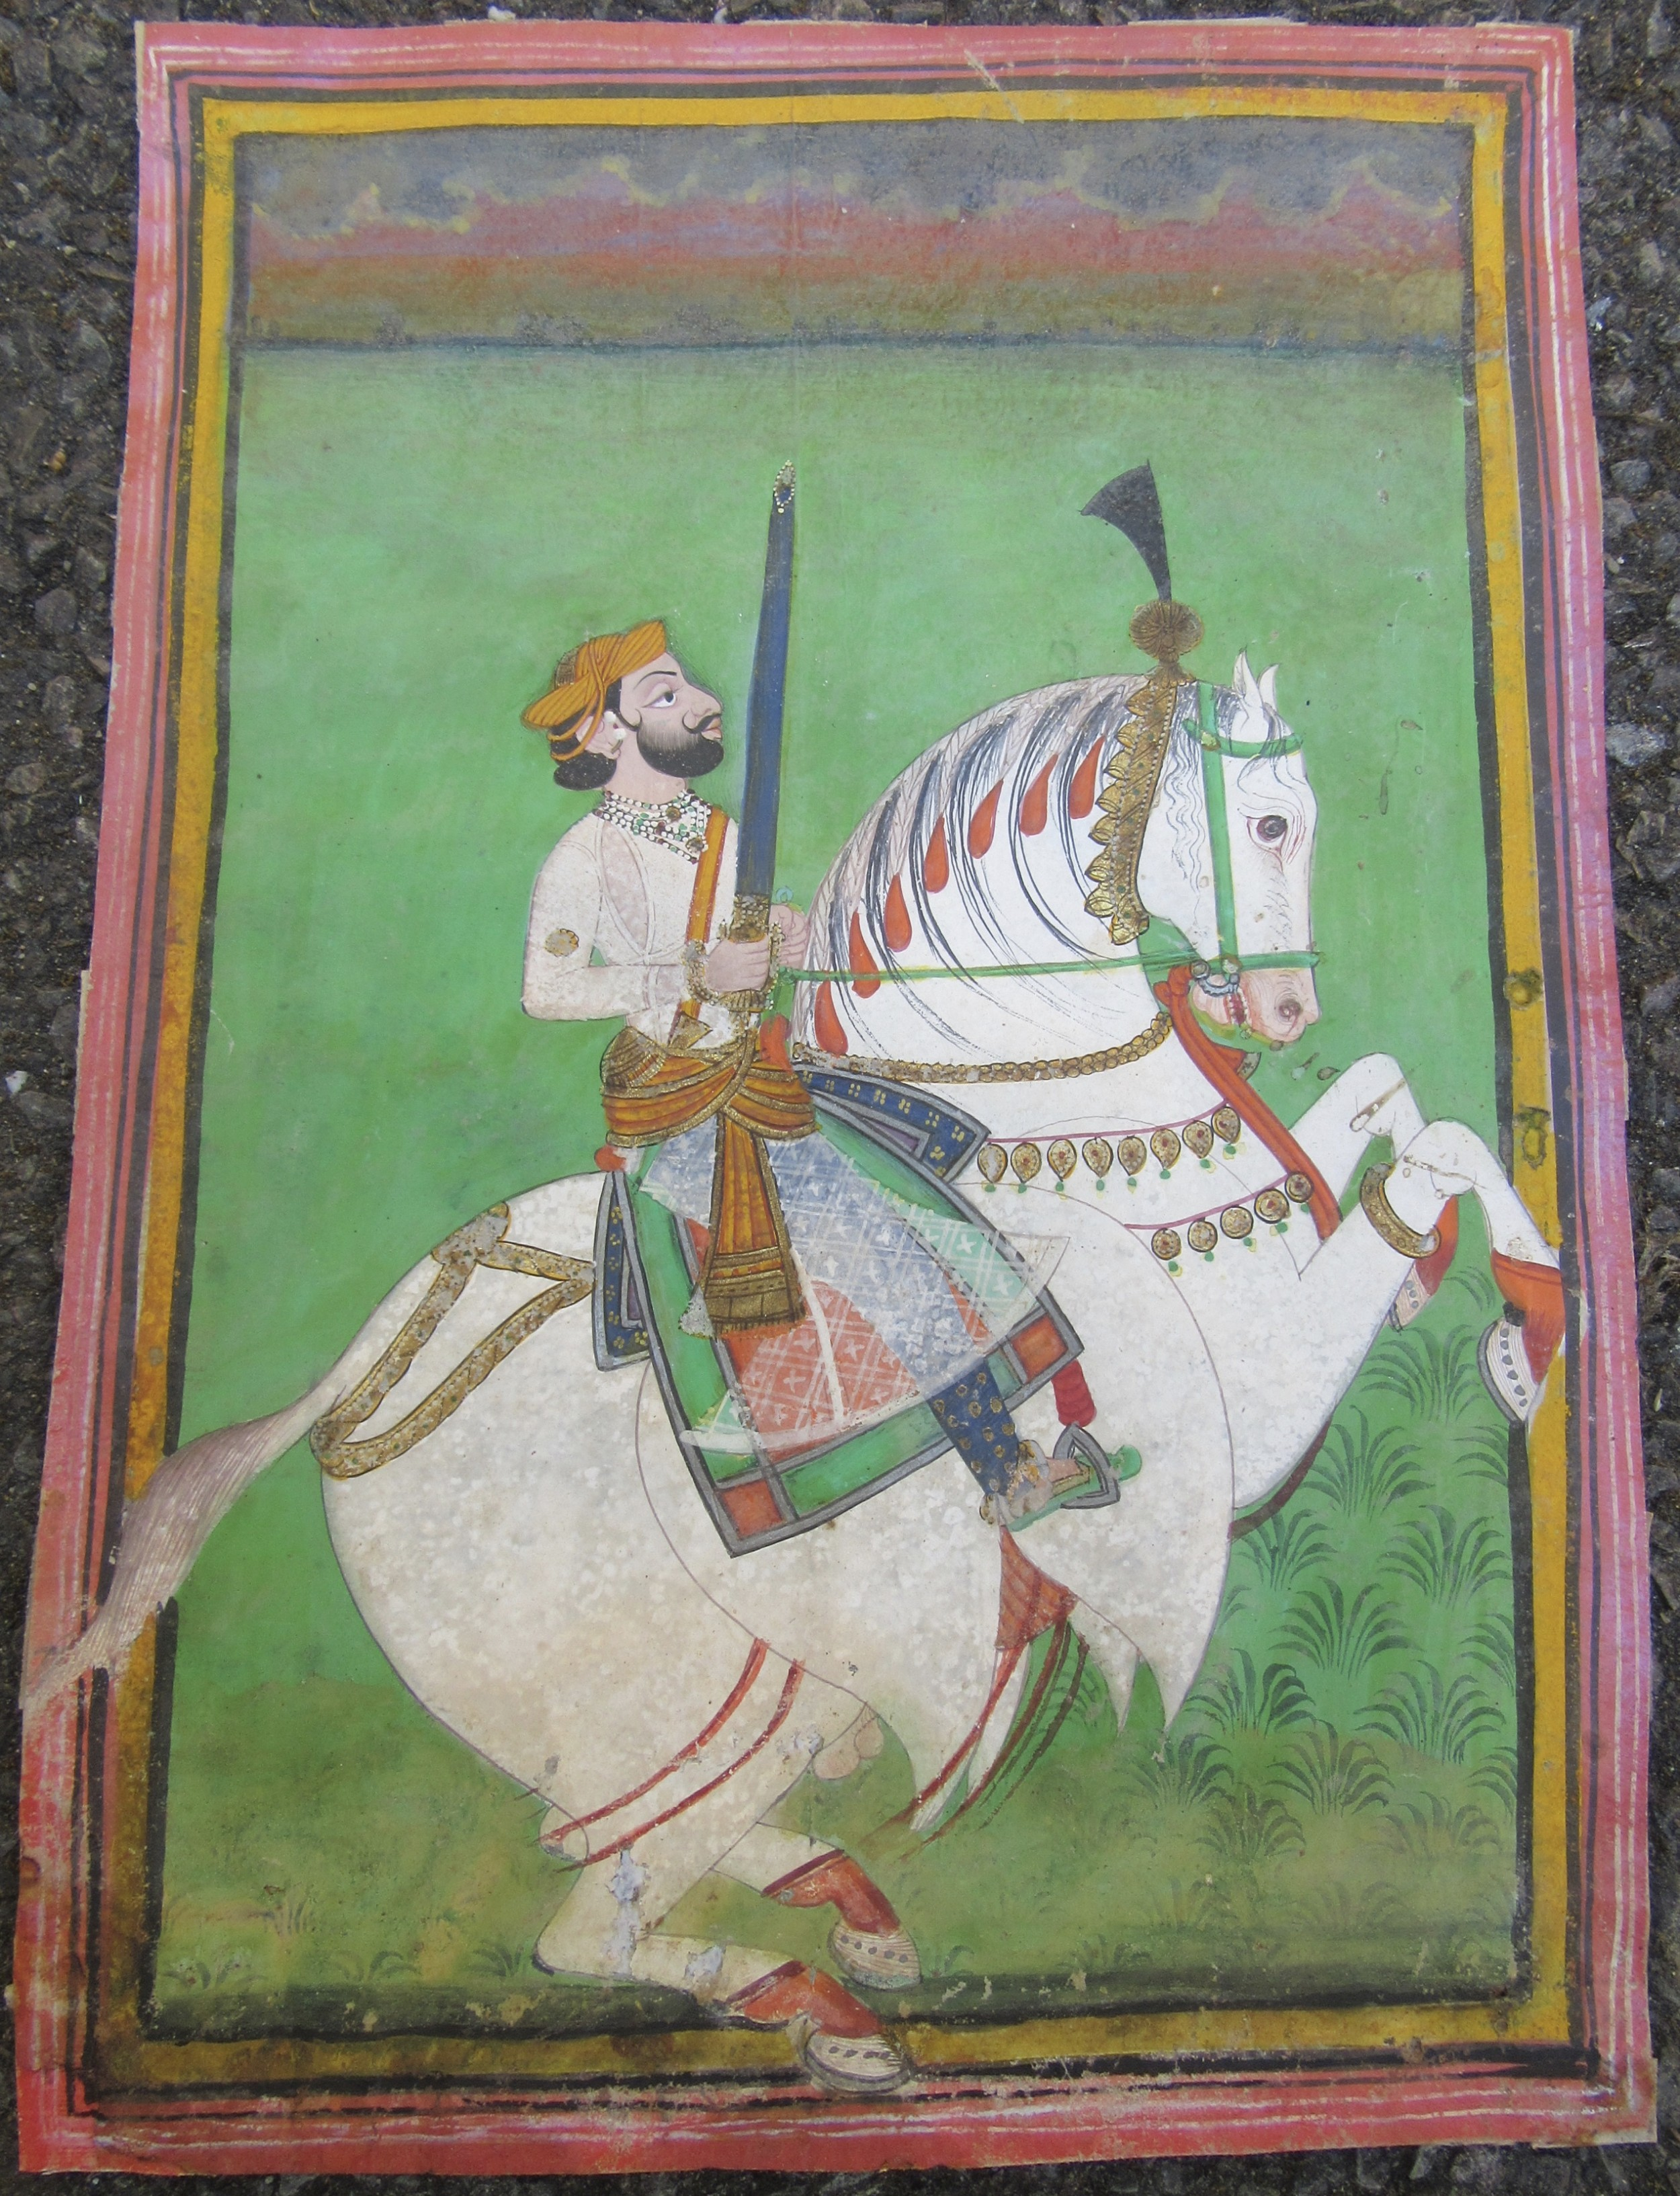 antique indian miniature painting an equestrian portrait of thakur sher singh of osian in martial pose jodhpurcirca 1850